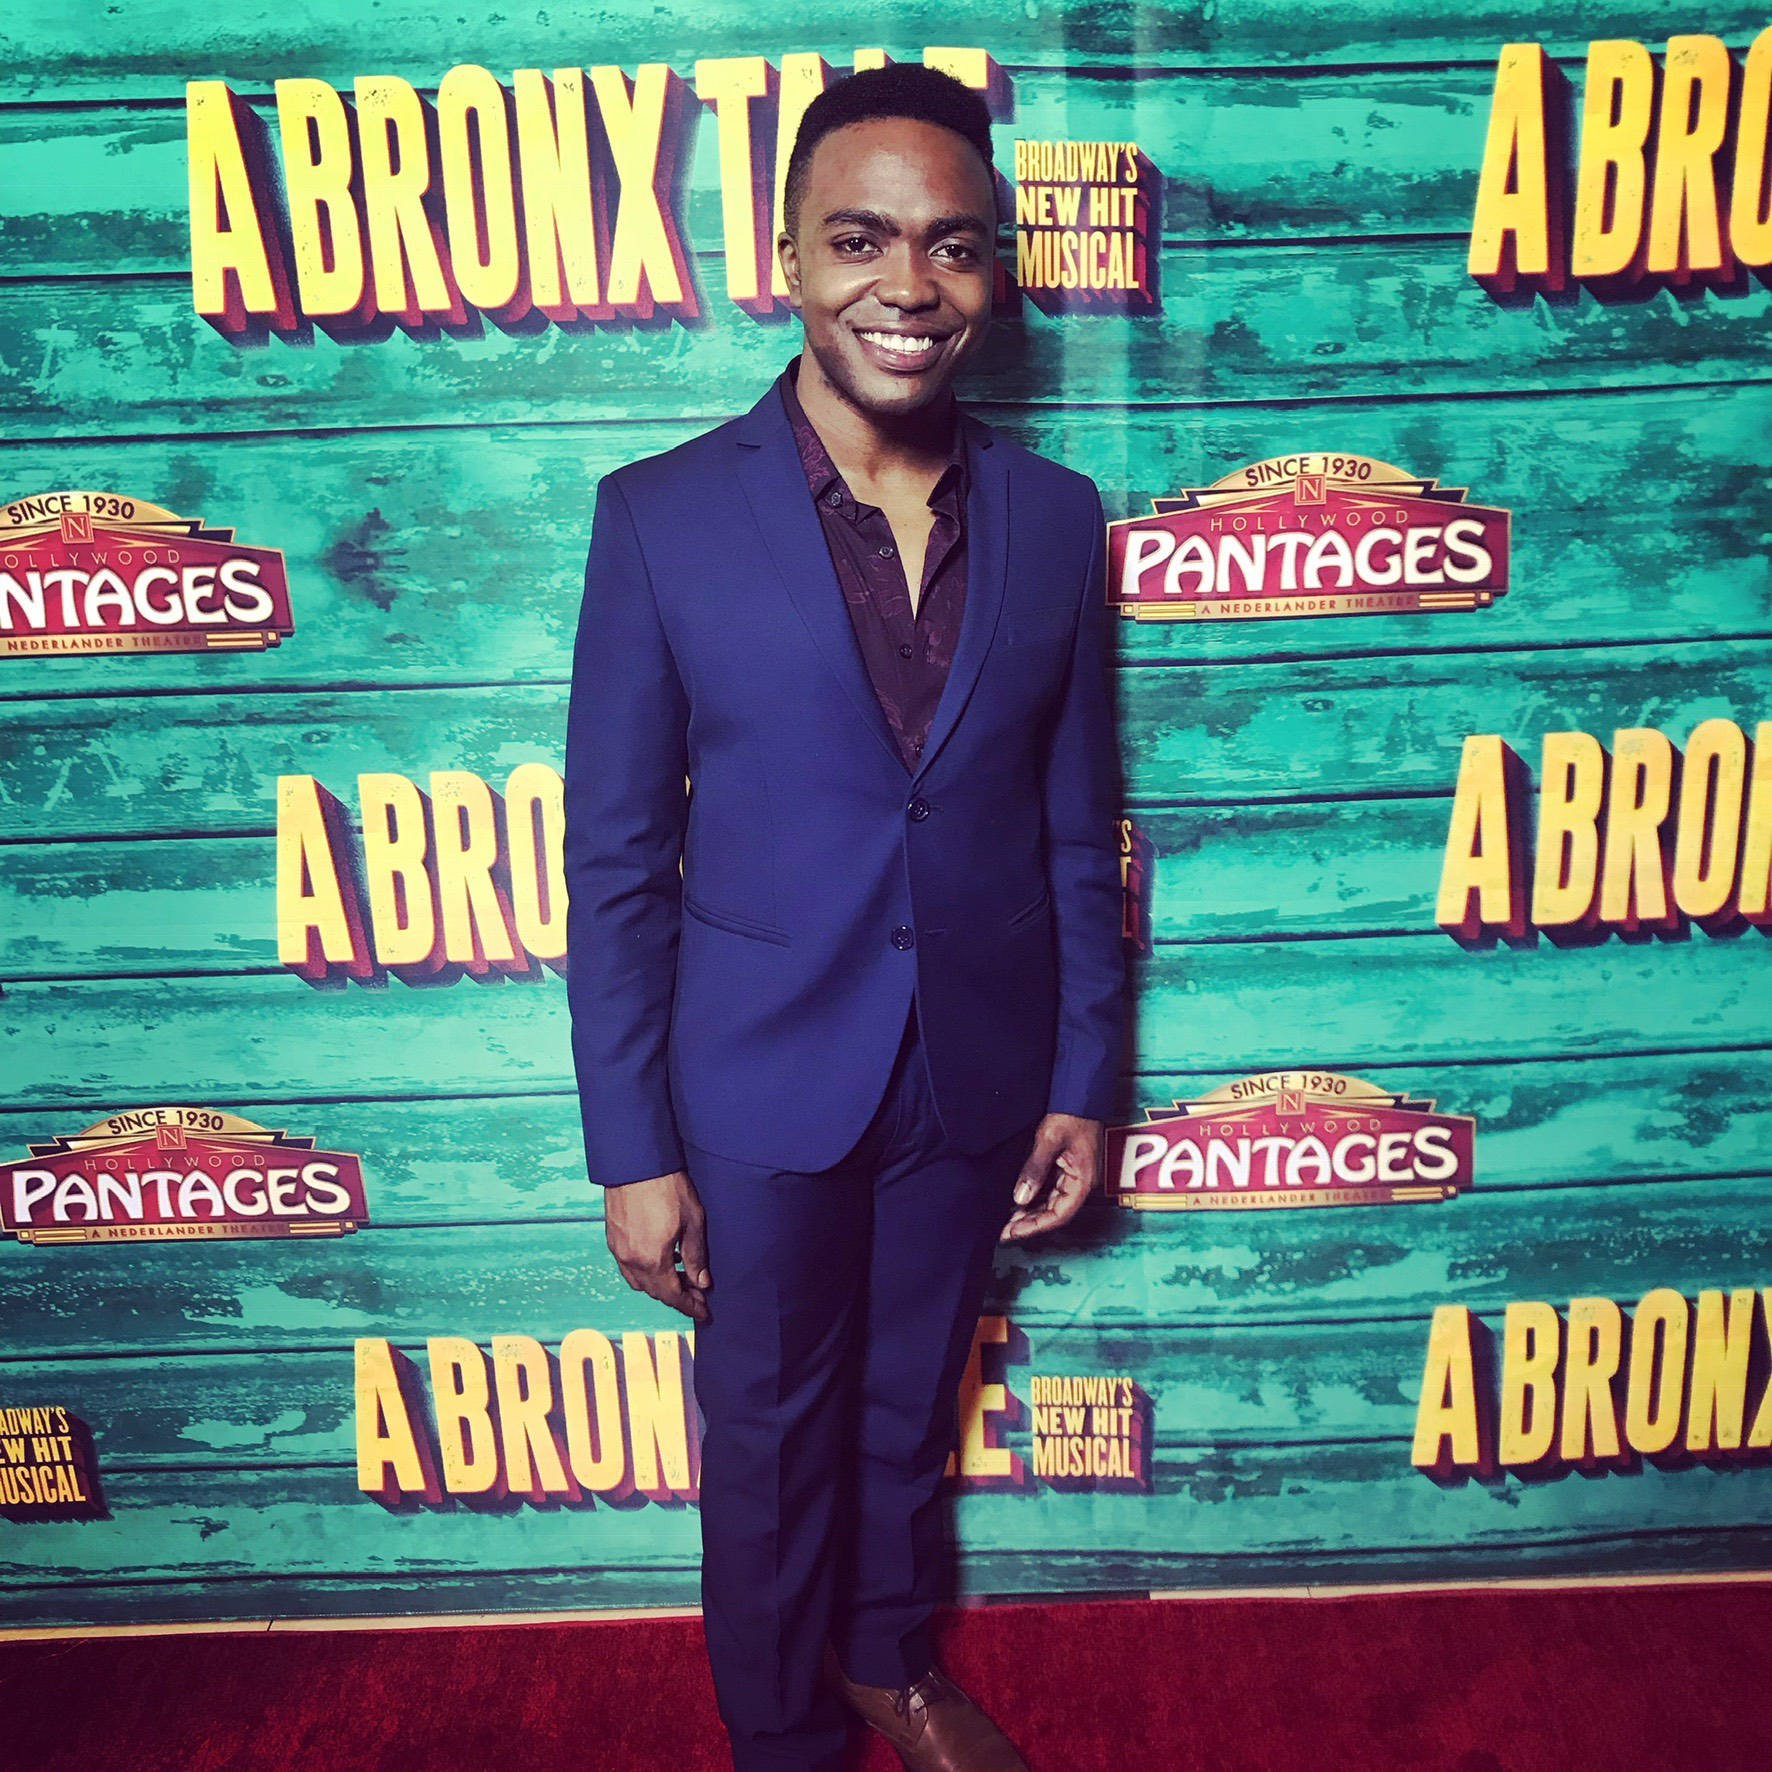 Jason Williams on the red carpet for Broadway's 'A Bronx Tale' |  Courtesy of Jason Williams and Broadway's 'A Bronx Tale'